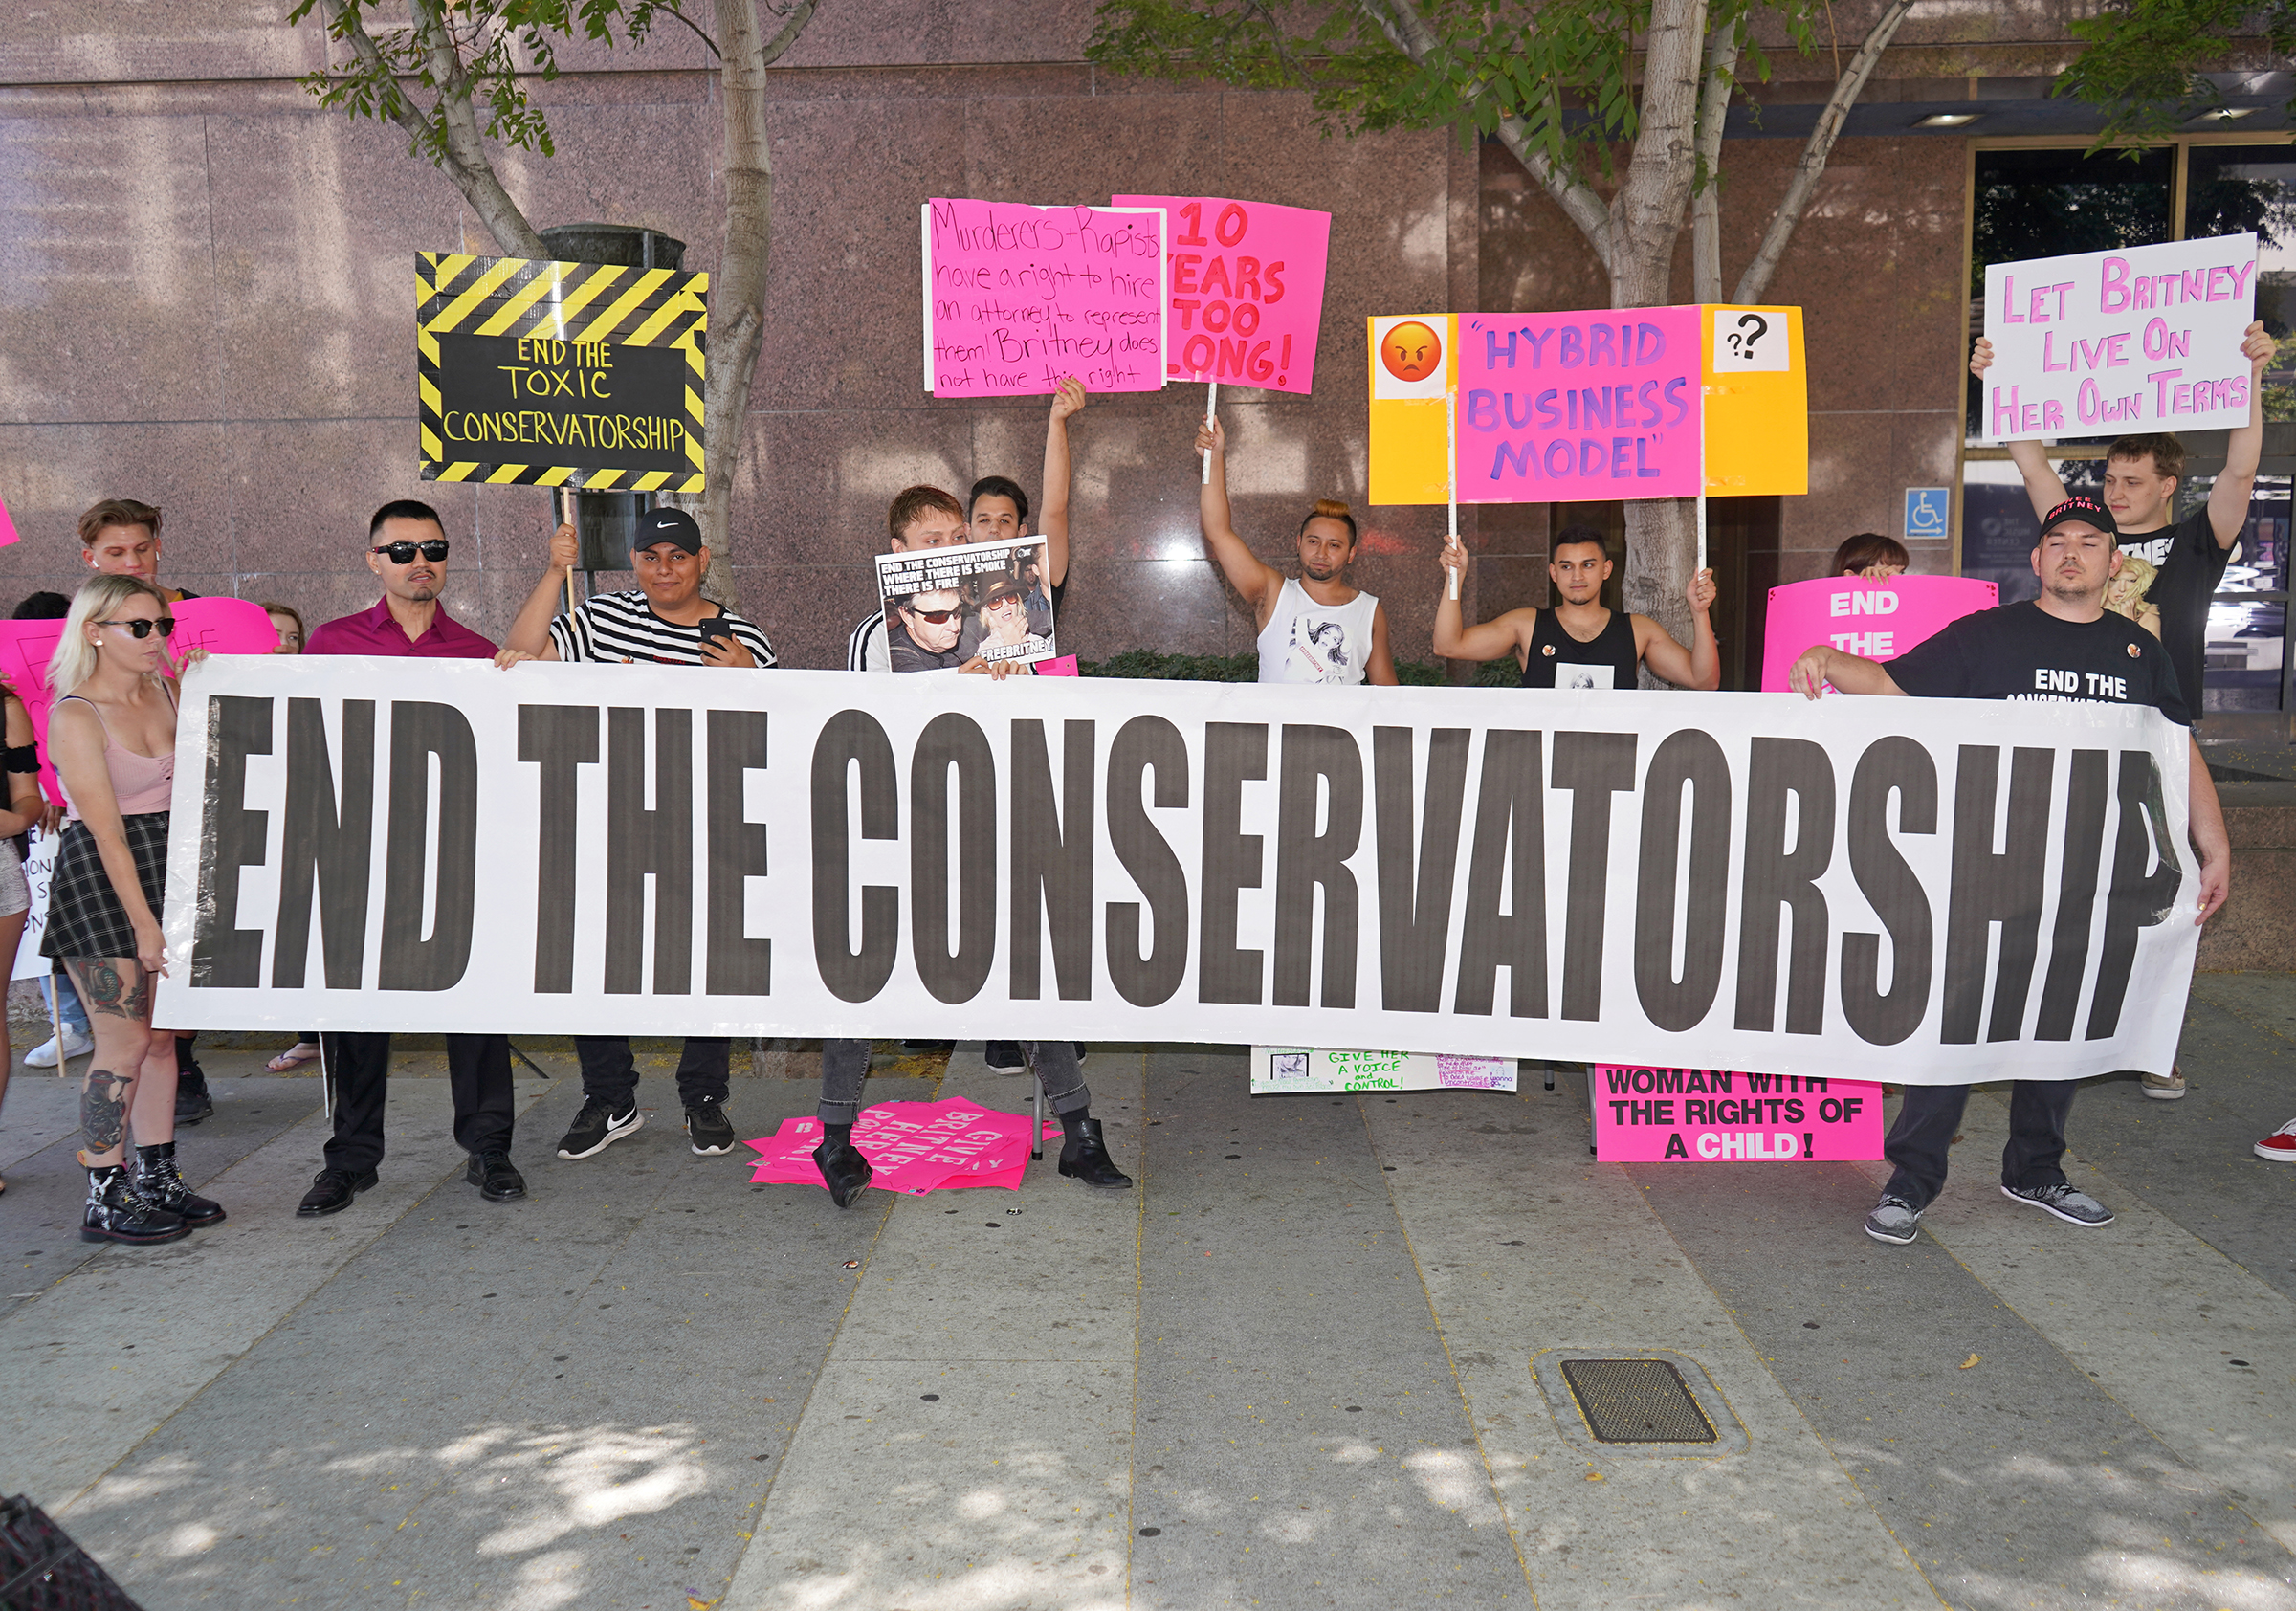 Protesters hold a banner outside a conservatorship hearing in September 2019.